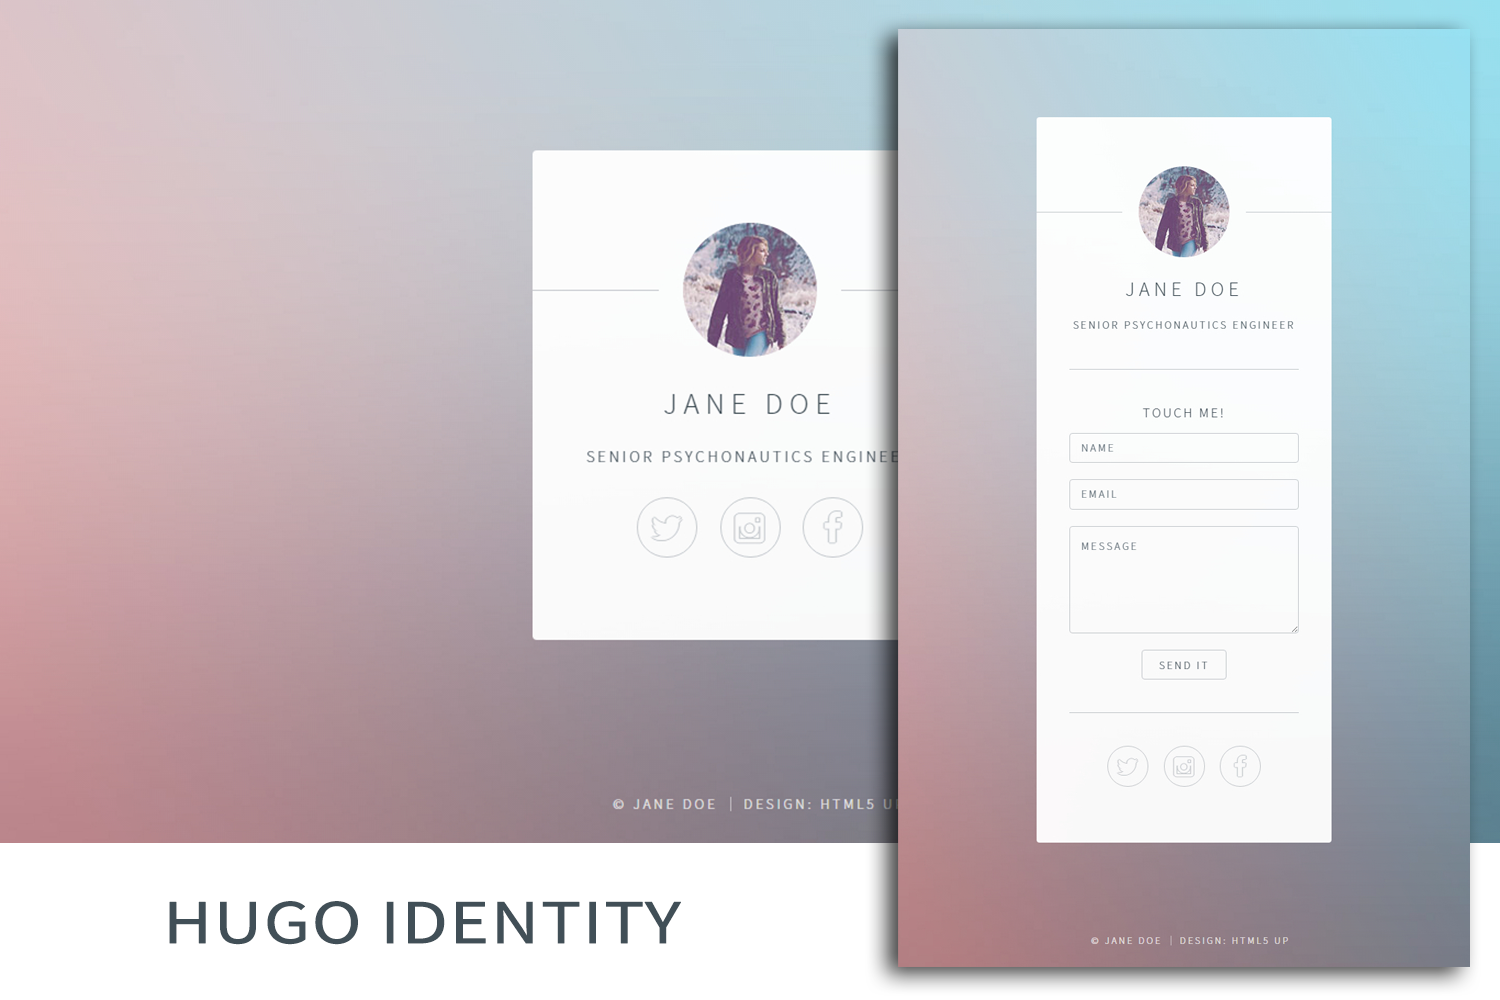 Hugo Identity Theme screenshot